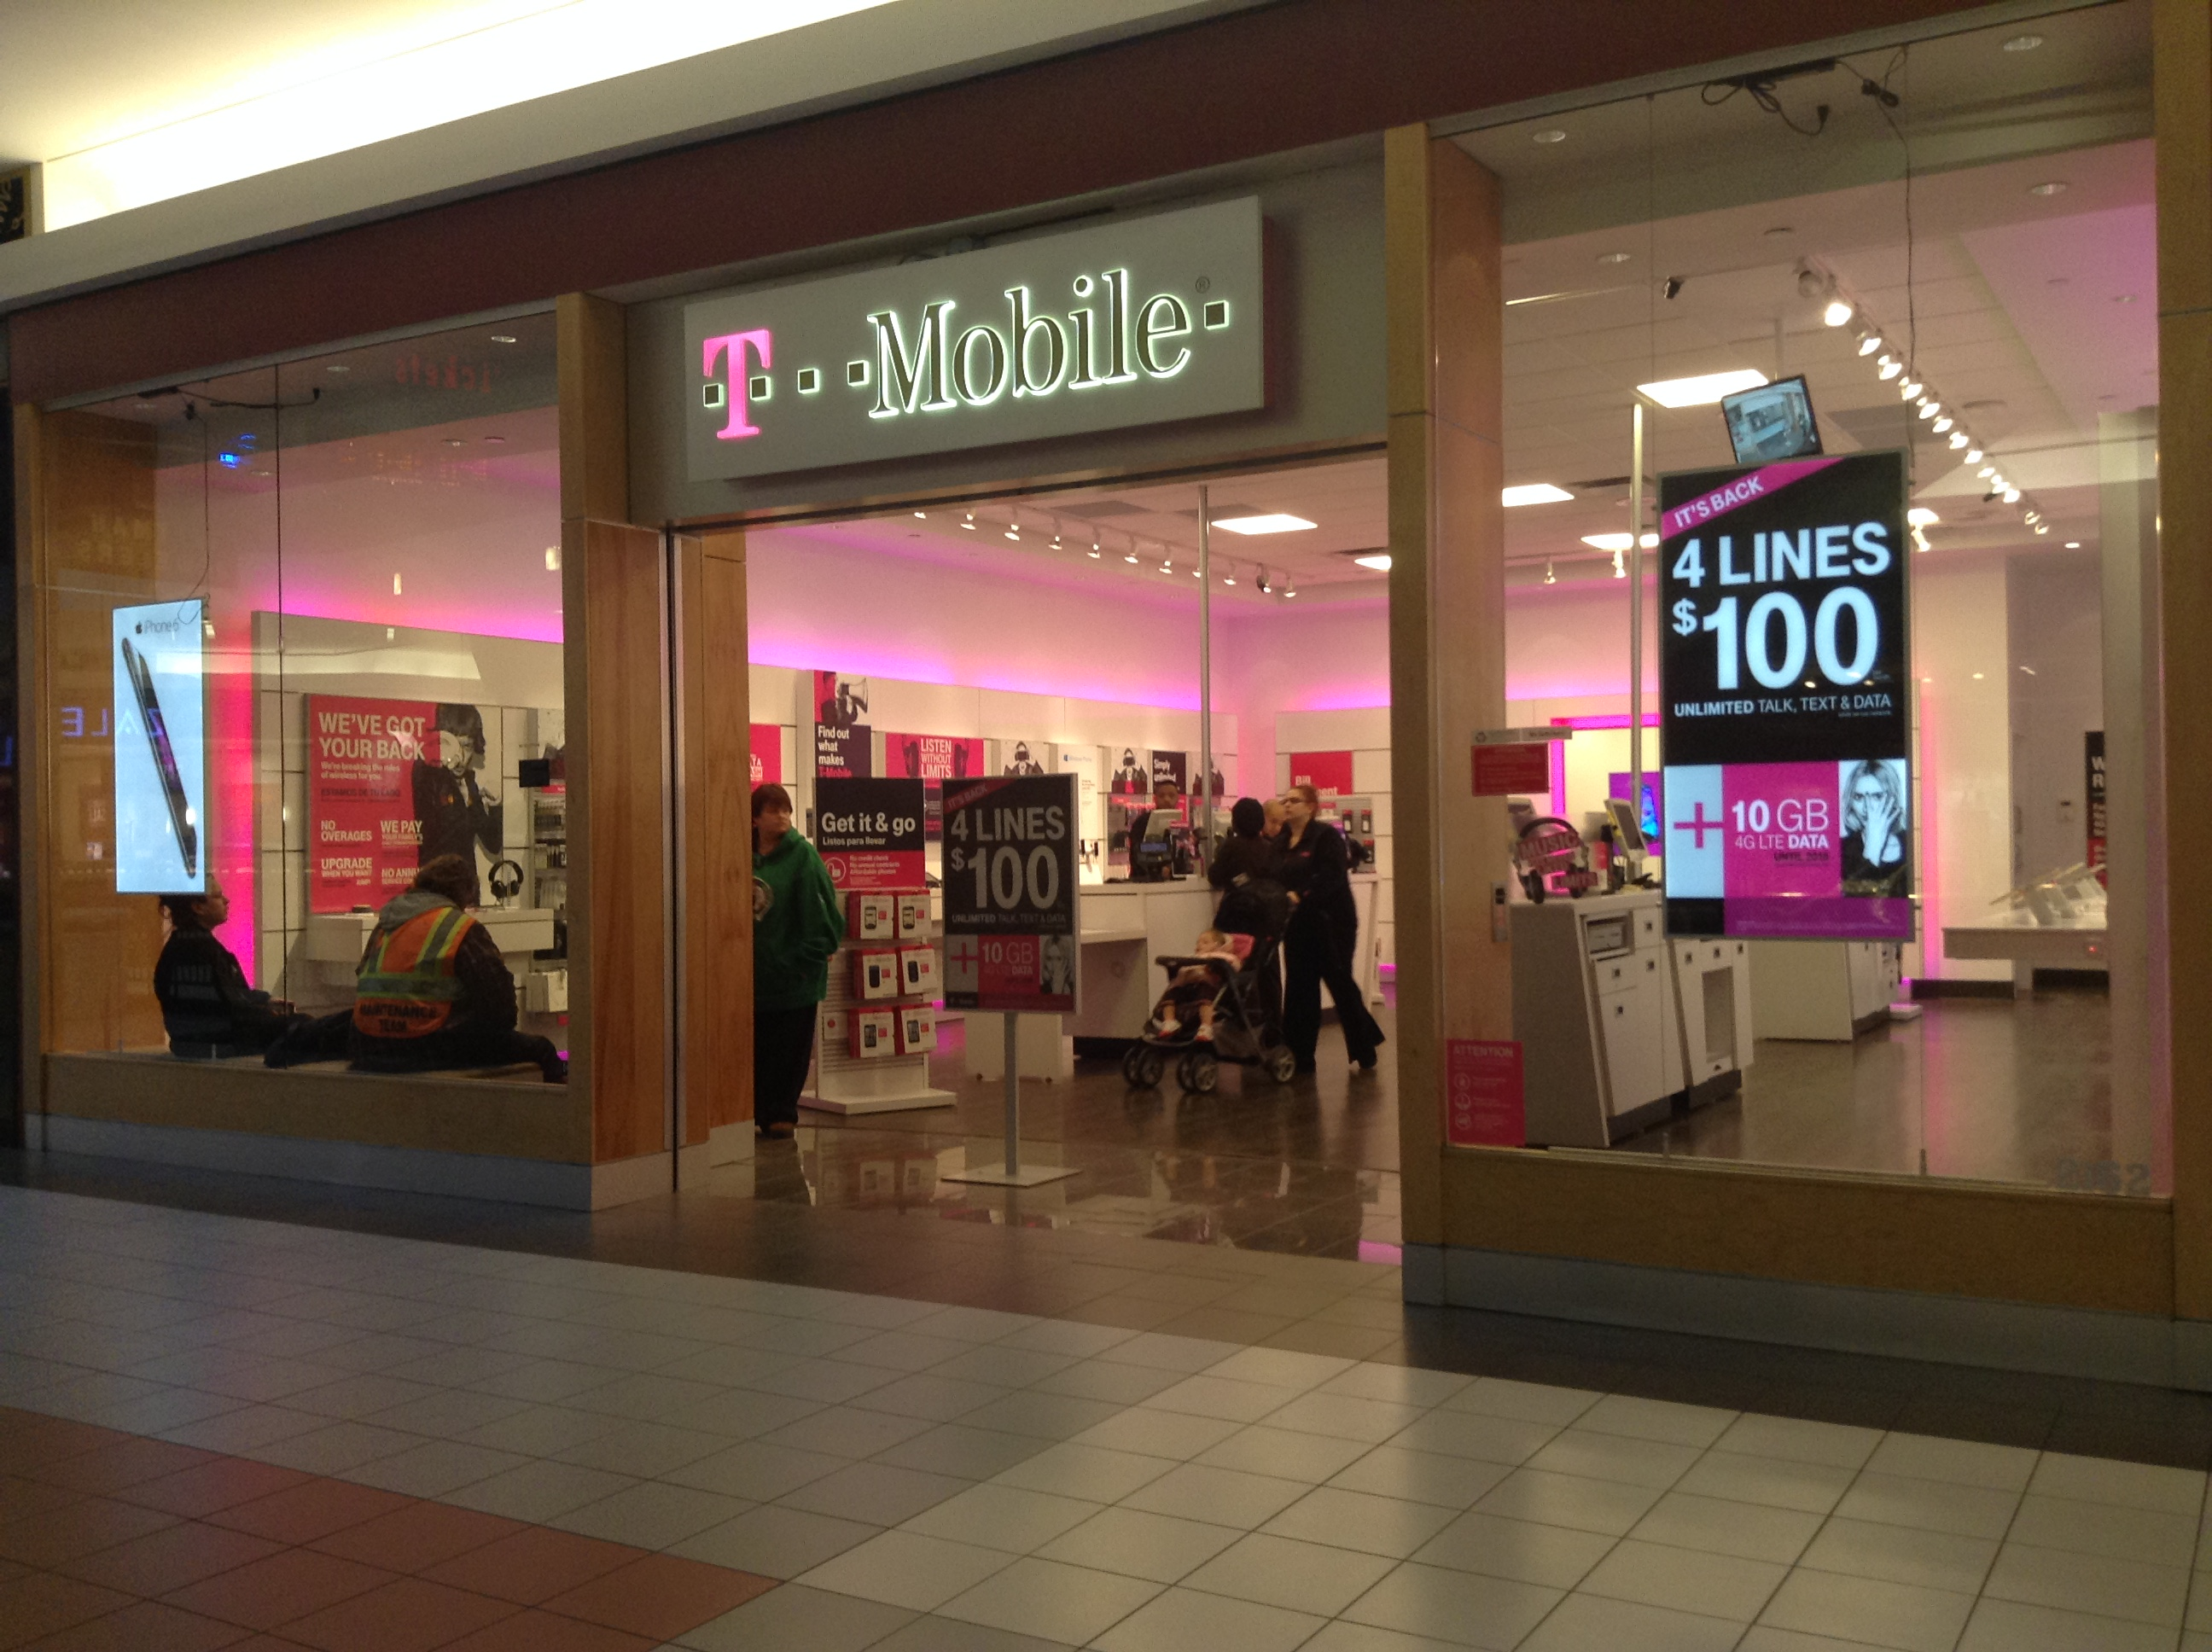 File:T-Mobile US Retail Store in Waterbury, CT.jpg - Wikimedia Commons